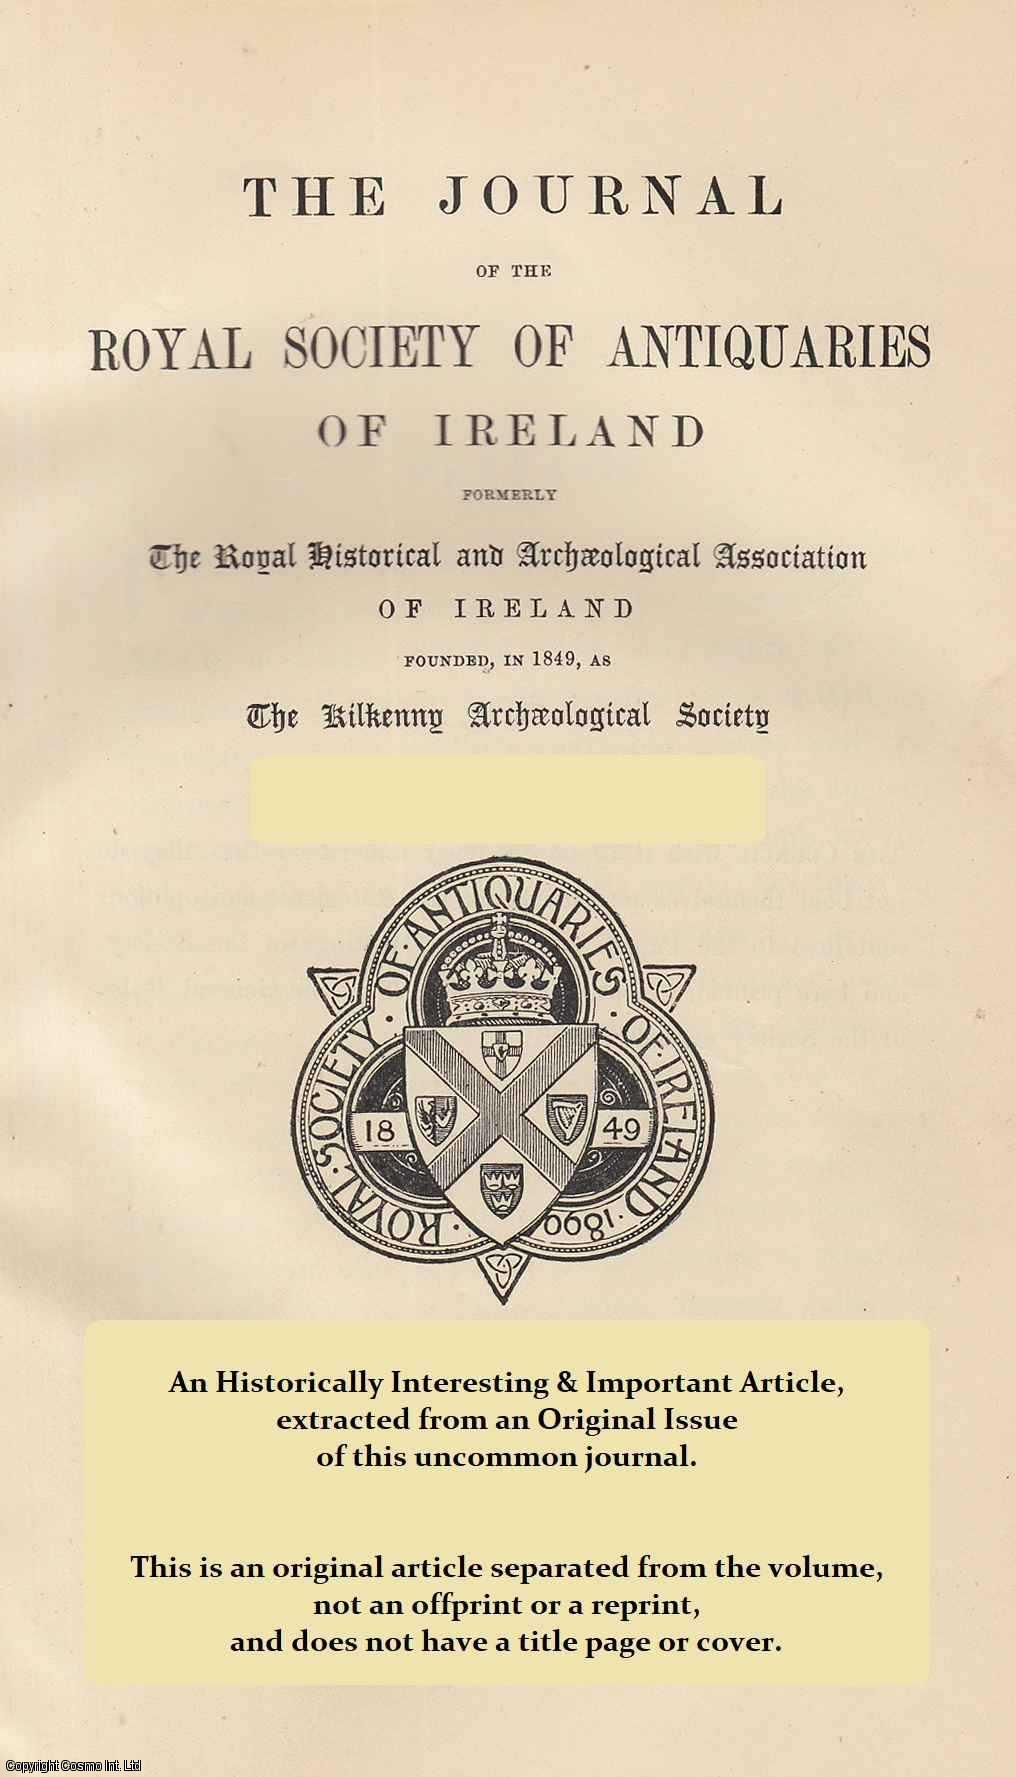 DOHERTY, WILLIAM - Derry Columbkille. A rare original article from The Journal of the Royal Society of Antiquaries of Ireland, 1902.